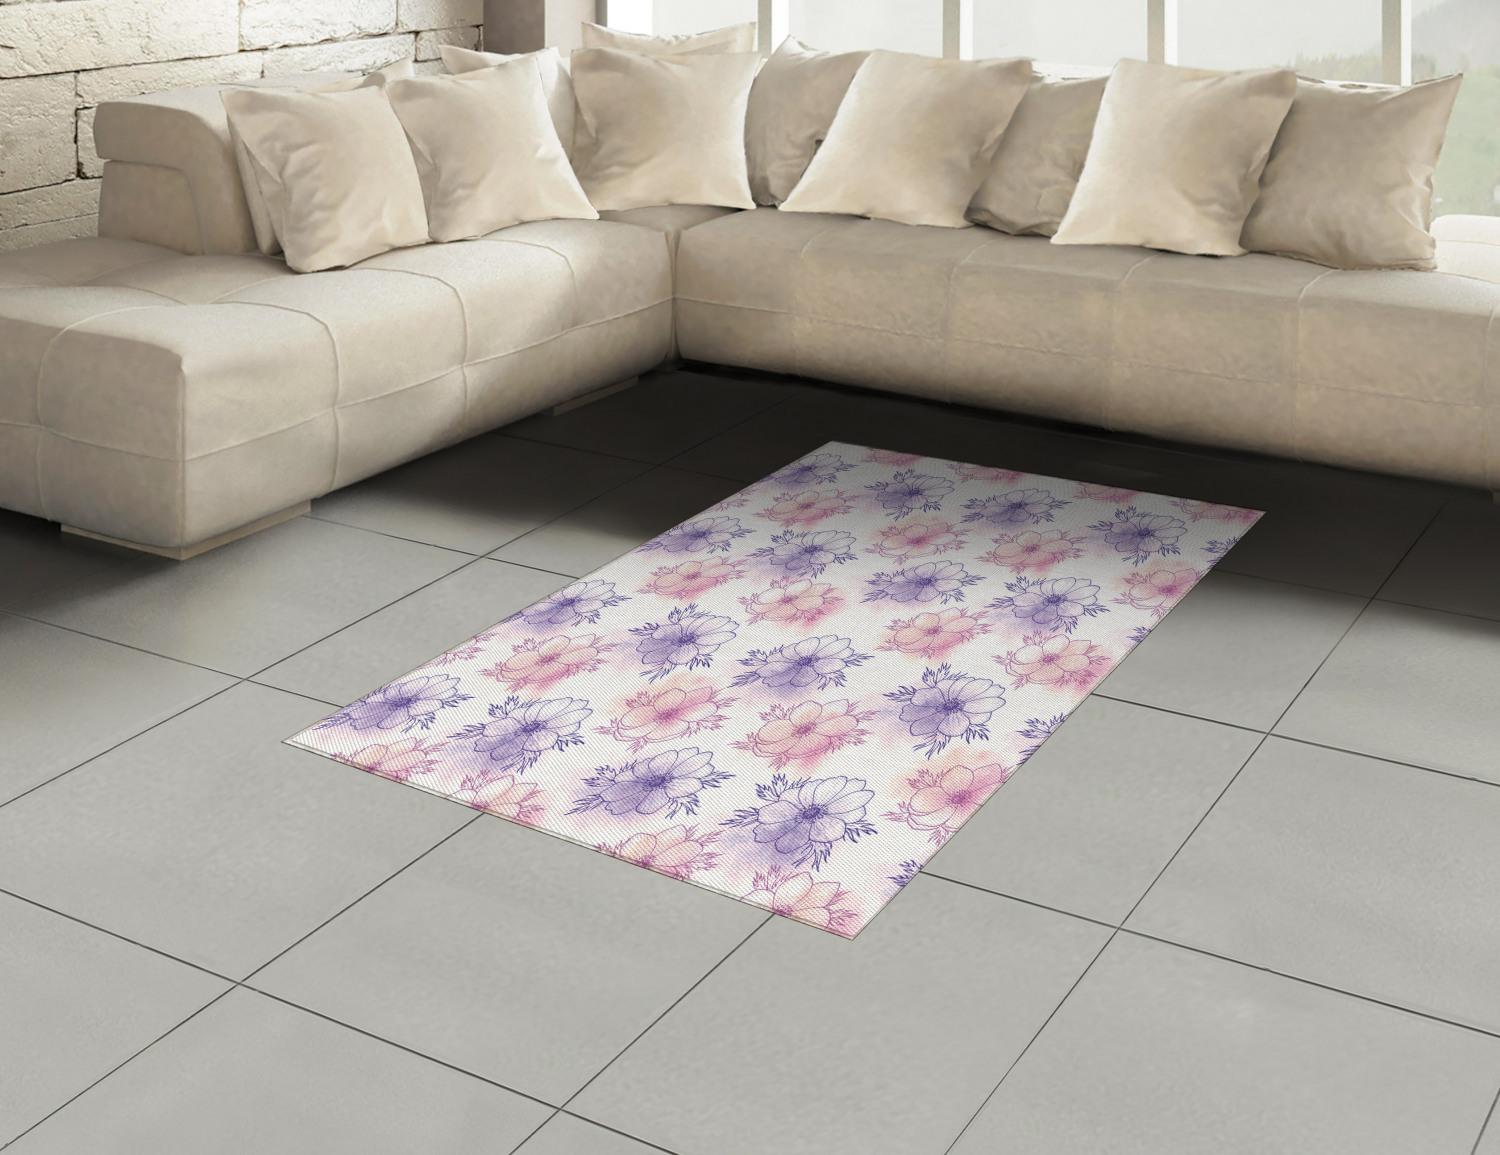 Anemone-Flower-Area-Rug-Decor-Flat-Woven-Accent-Rug-Home-Decor-2-Sizes-Ambesonne thumbnail 46